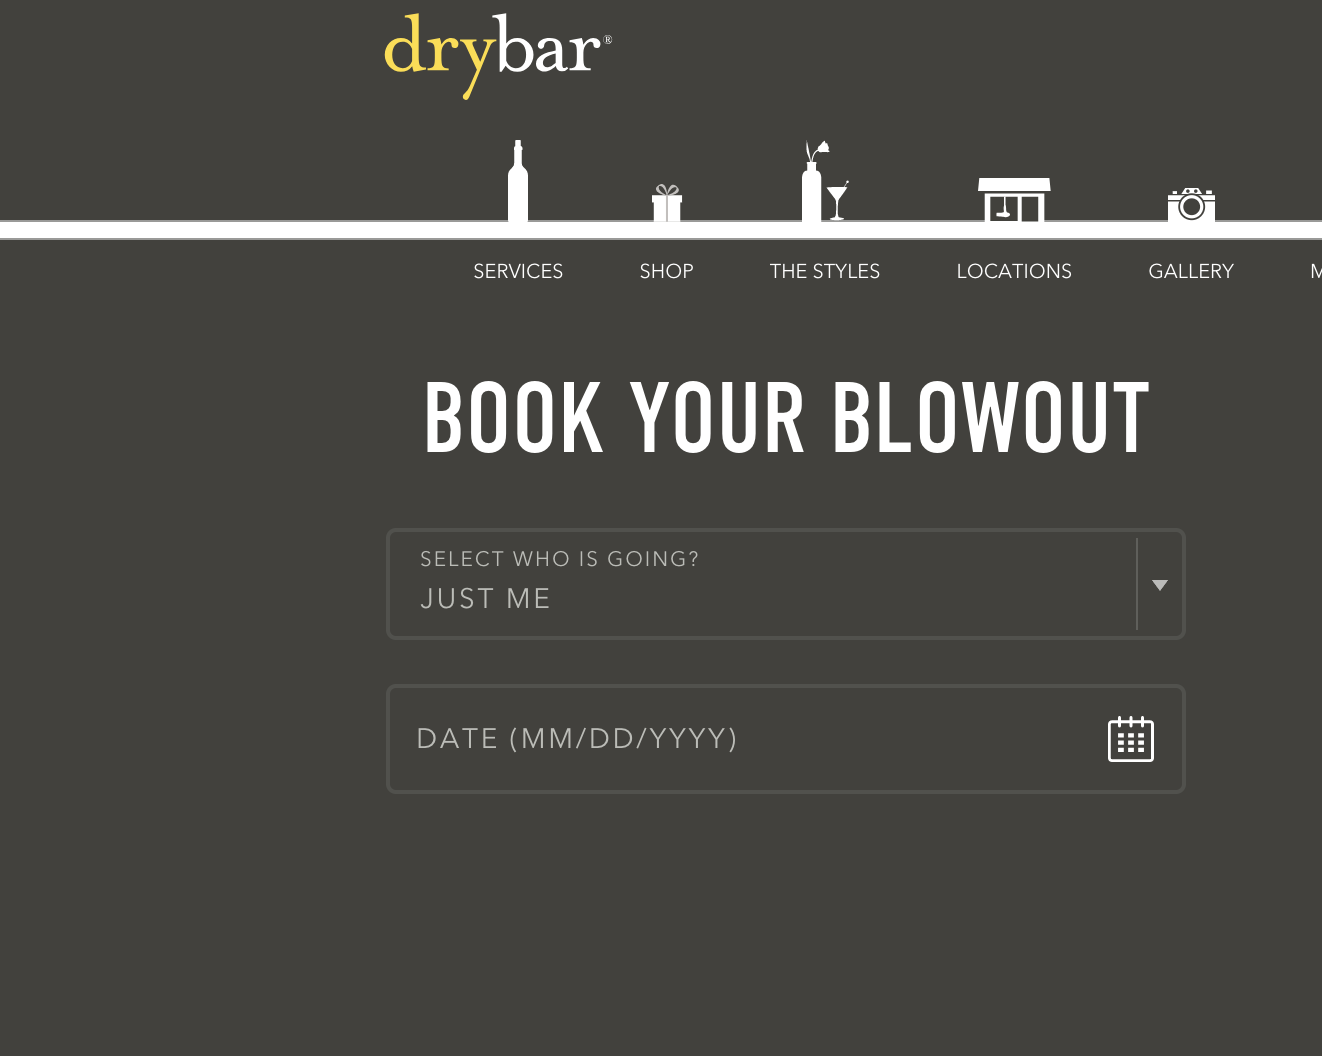 drybar-appointment-booking